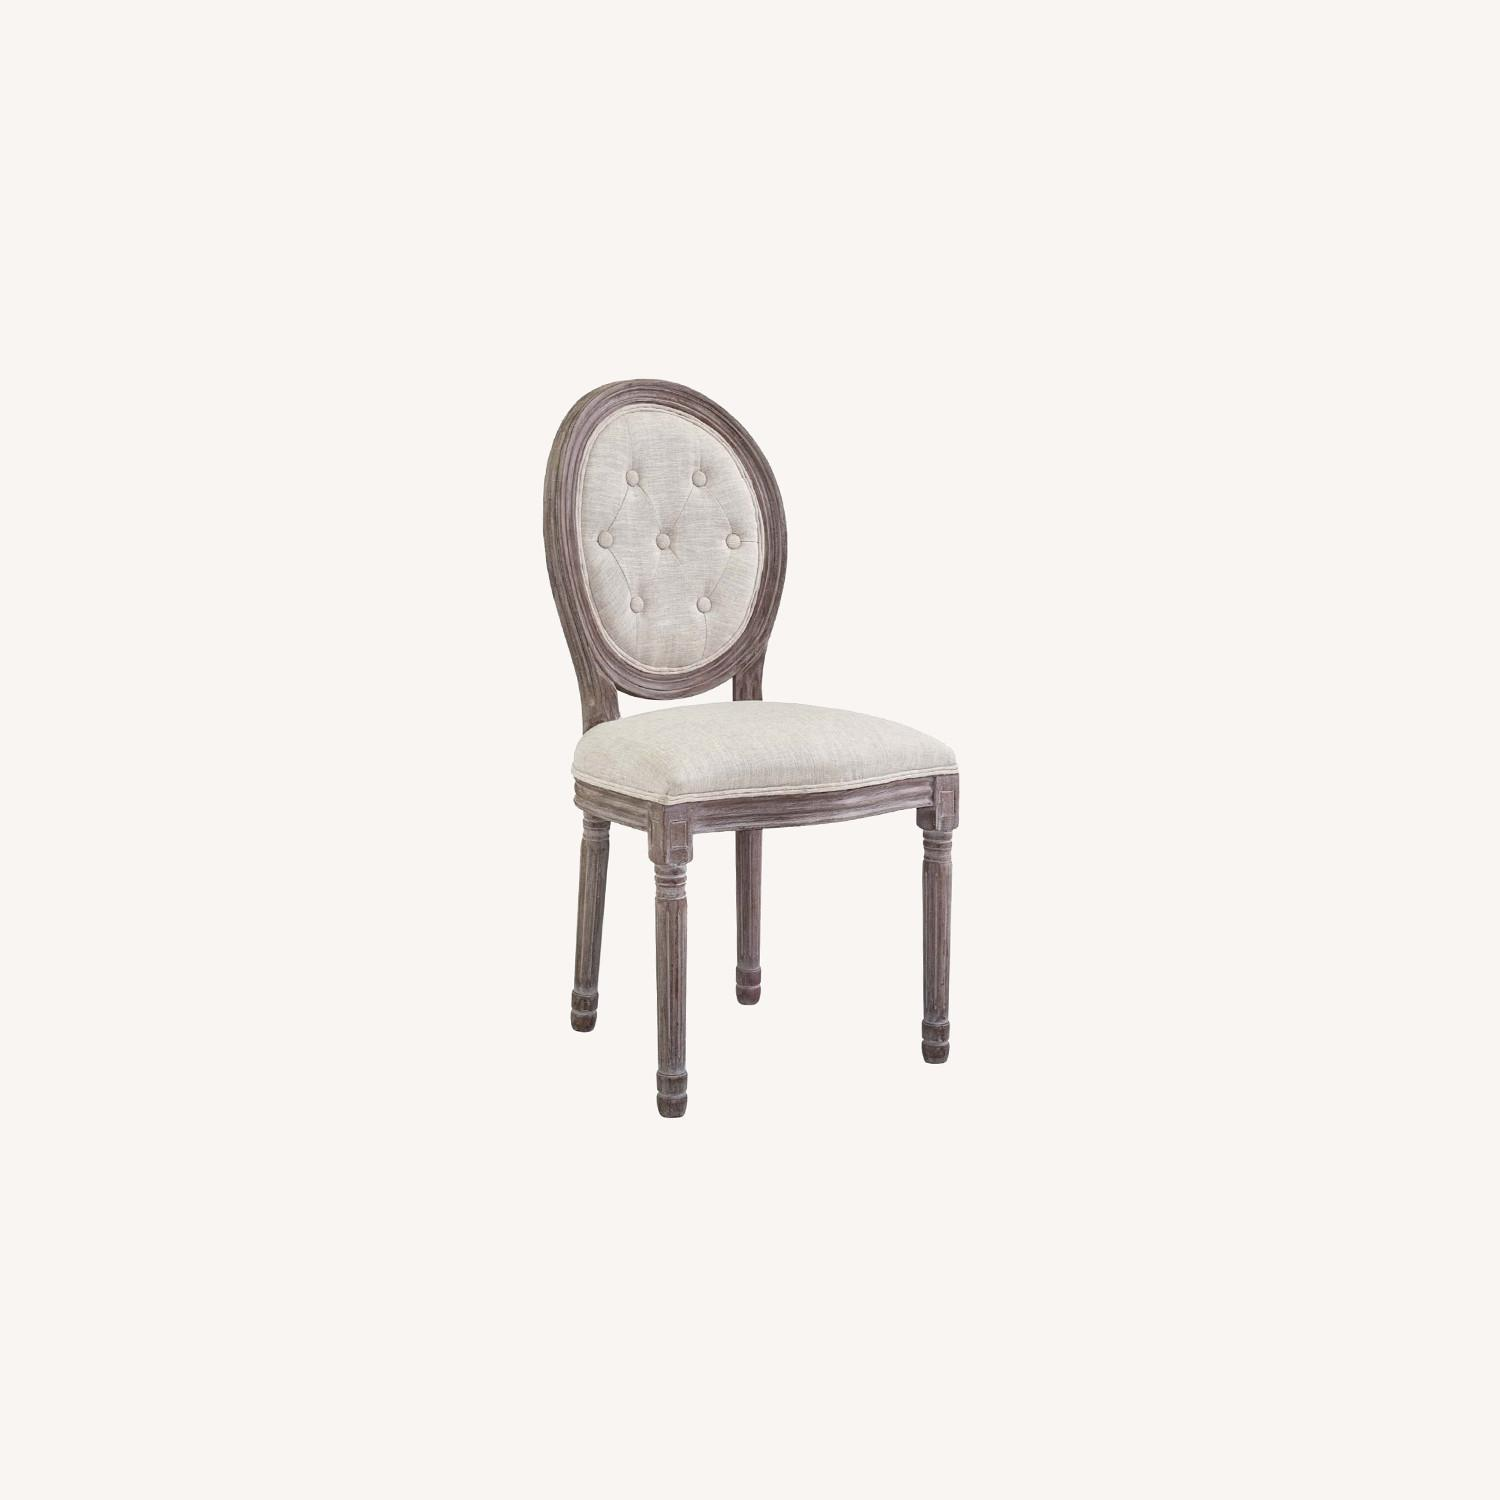 Traditional Dining Chair In Beige Fabric Finish - image-6